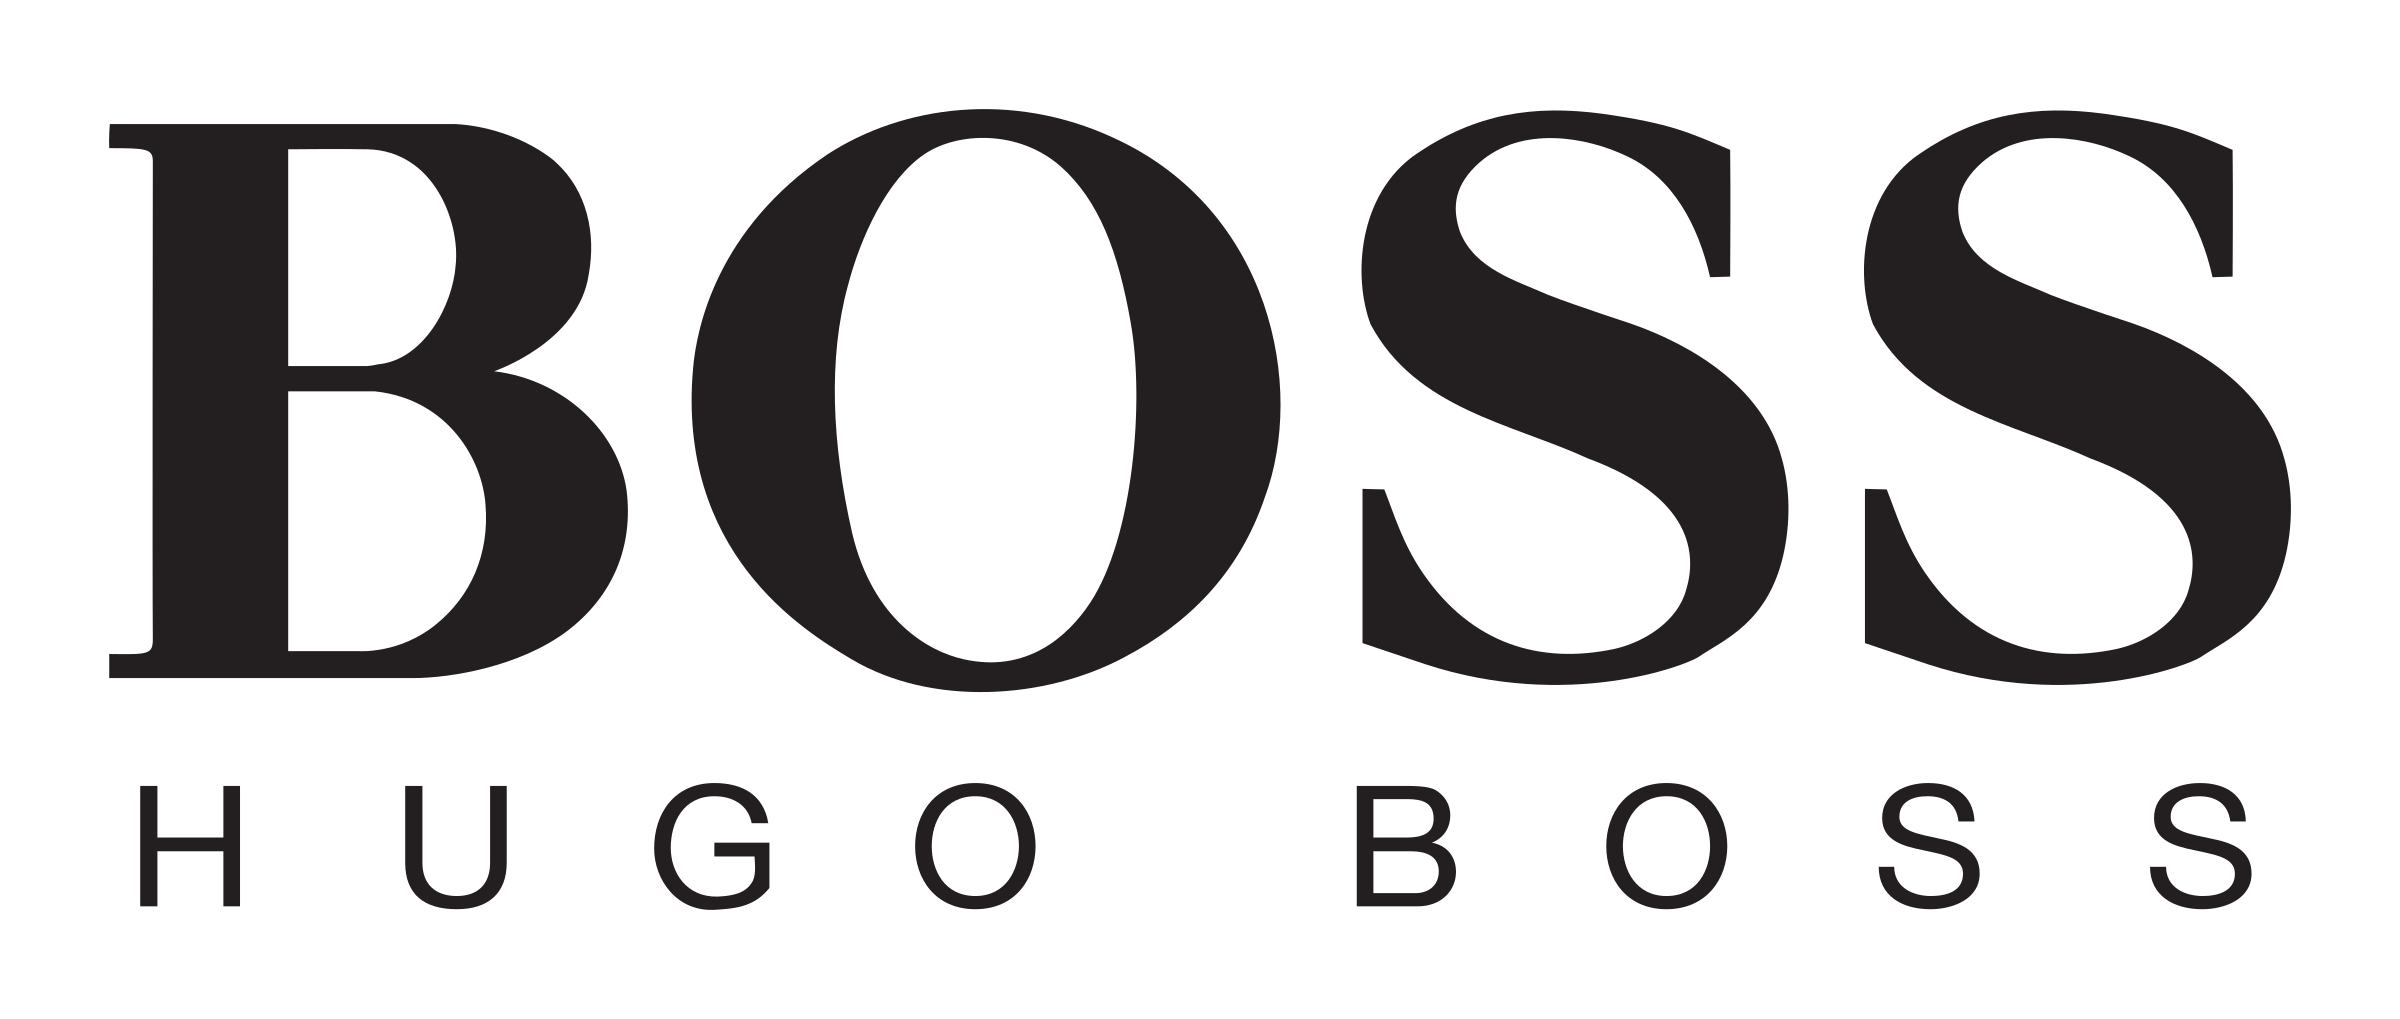 Hugo Boss Logo Png Transparent - Boss PNG Black And White